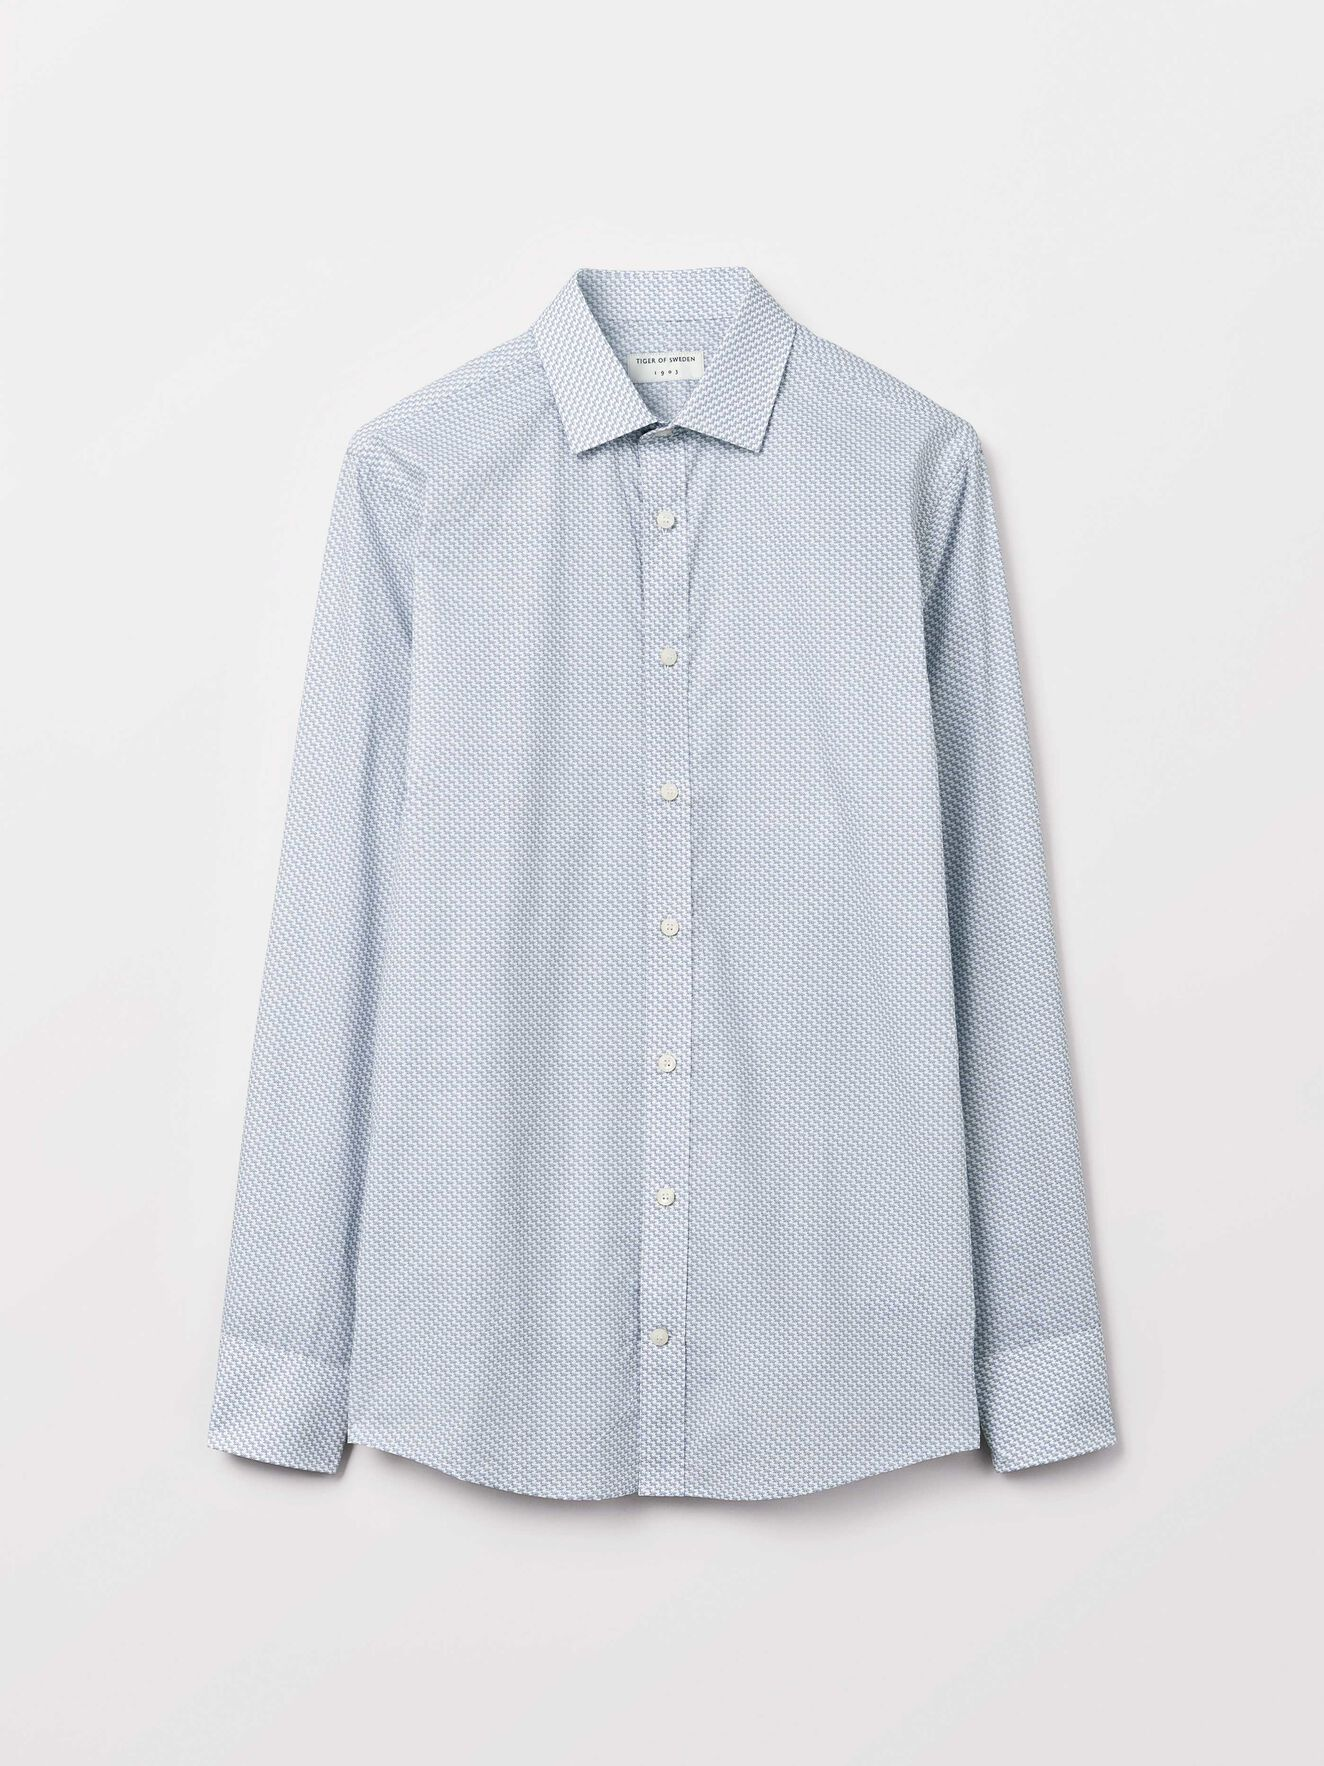 Fridolf Shirt in Light Ink from Tiger of Sweden